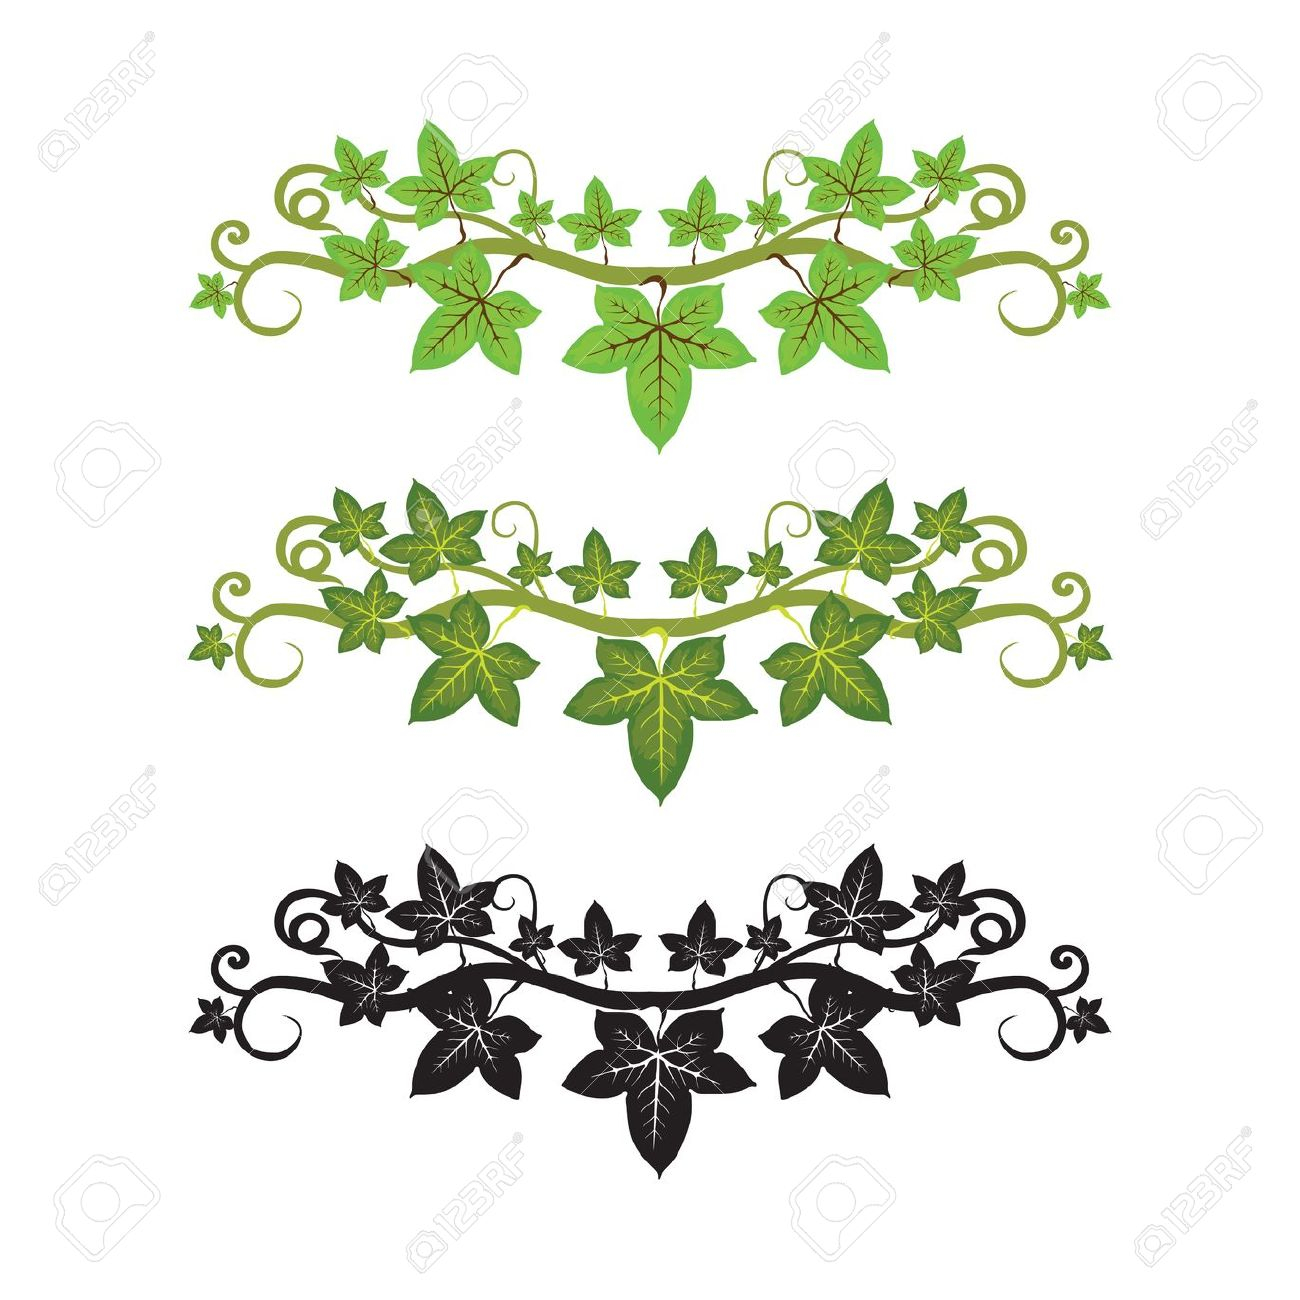 6,417 Ivy Stock Illustrations, Cliparts And Royalty Free Ivy Vectors.